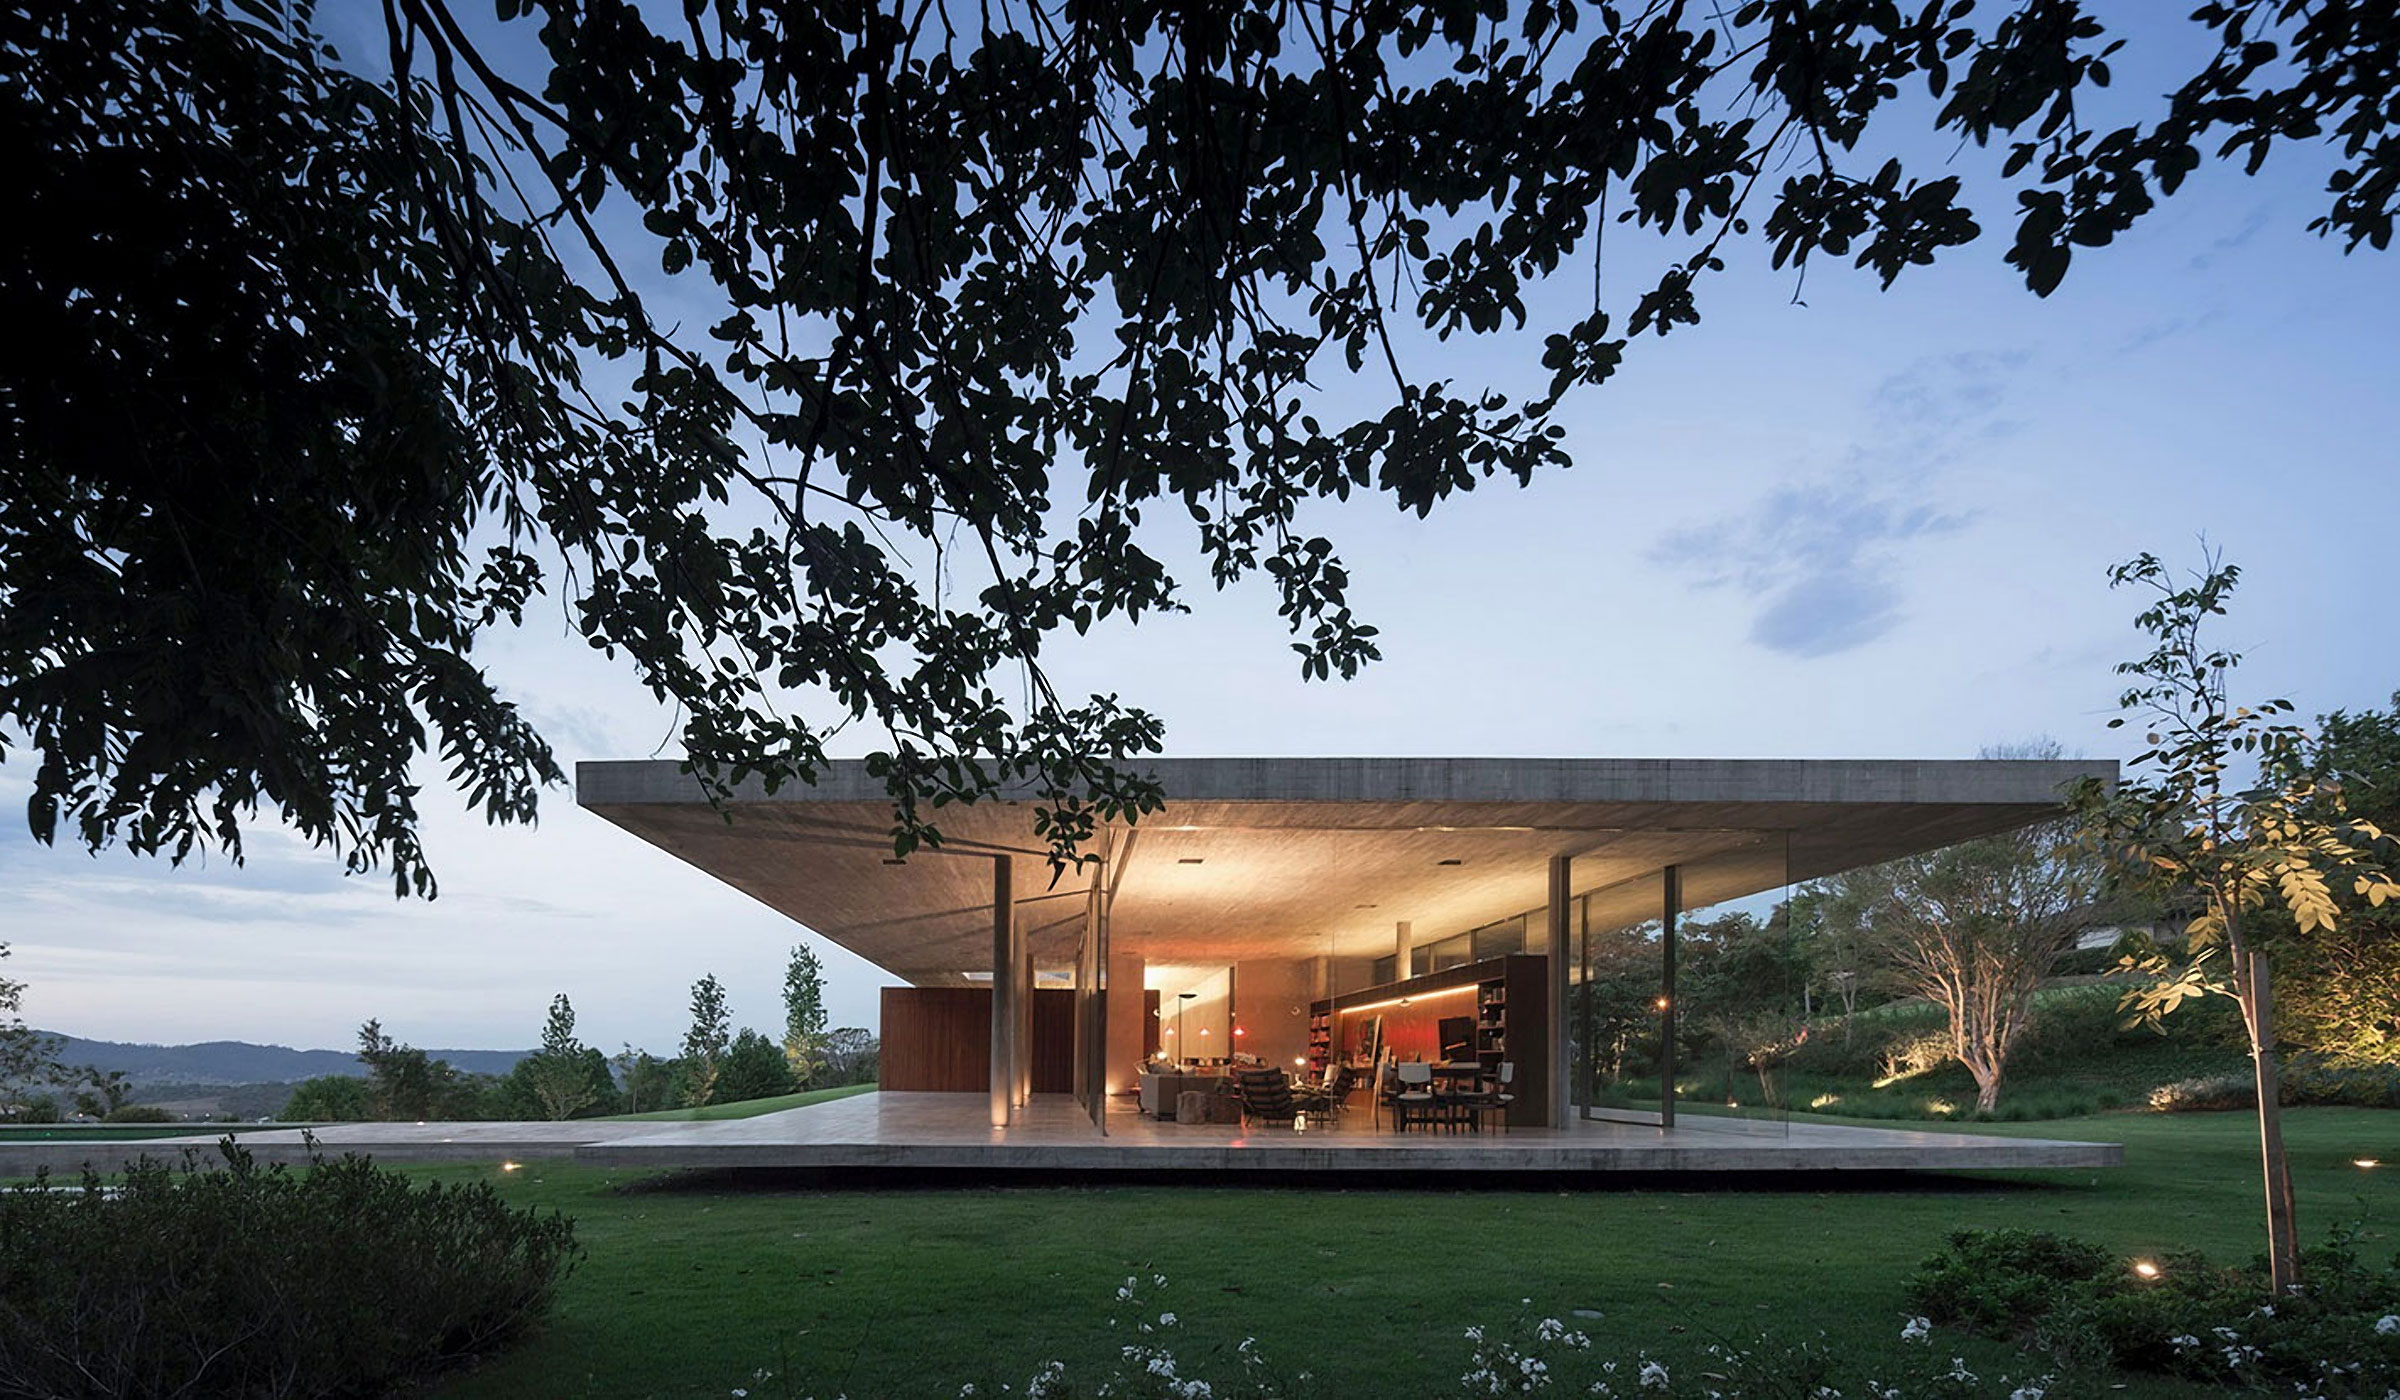 THE REDUX HOUSE BY STUDIO MK27